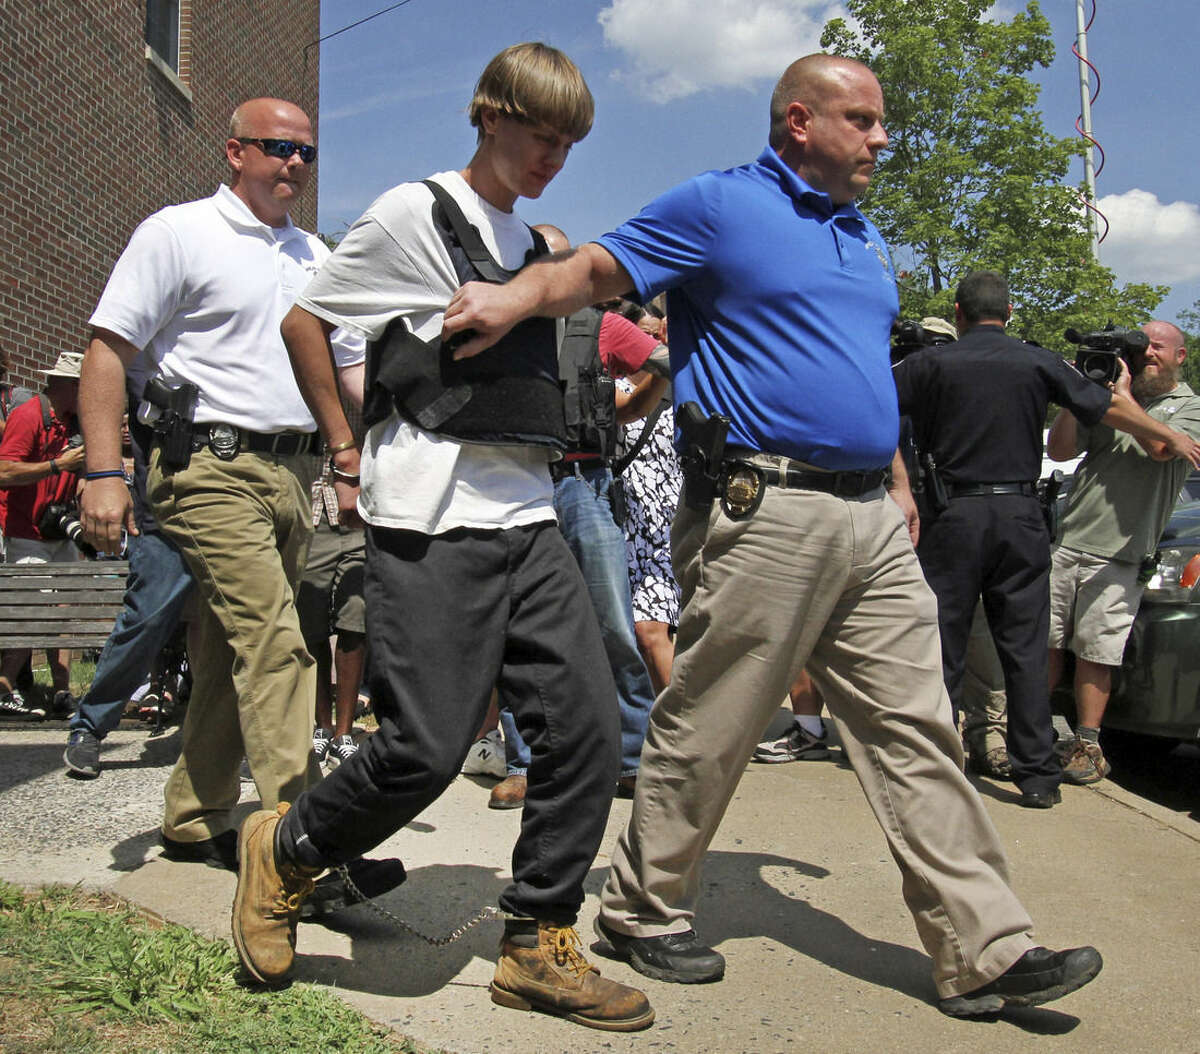 CORRECTS BYLINE TO BEN EARP FROM CHUCK BURTON - Charleston, S.C., shooting suspect Dylann Storm Roof, second from left, is escorted from the Shelby Police Department in Shelby, N.C., Thursday, June 18, 2015. Roof is a suspect in the shooting of several people Wednesday night at the historic The Emanuel African Methodist Episcopal Church in Charleston, S.C. (AP Photo/Ben Earp)